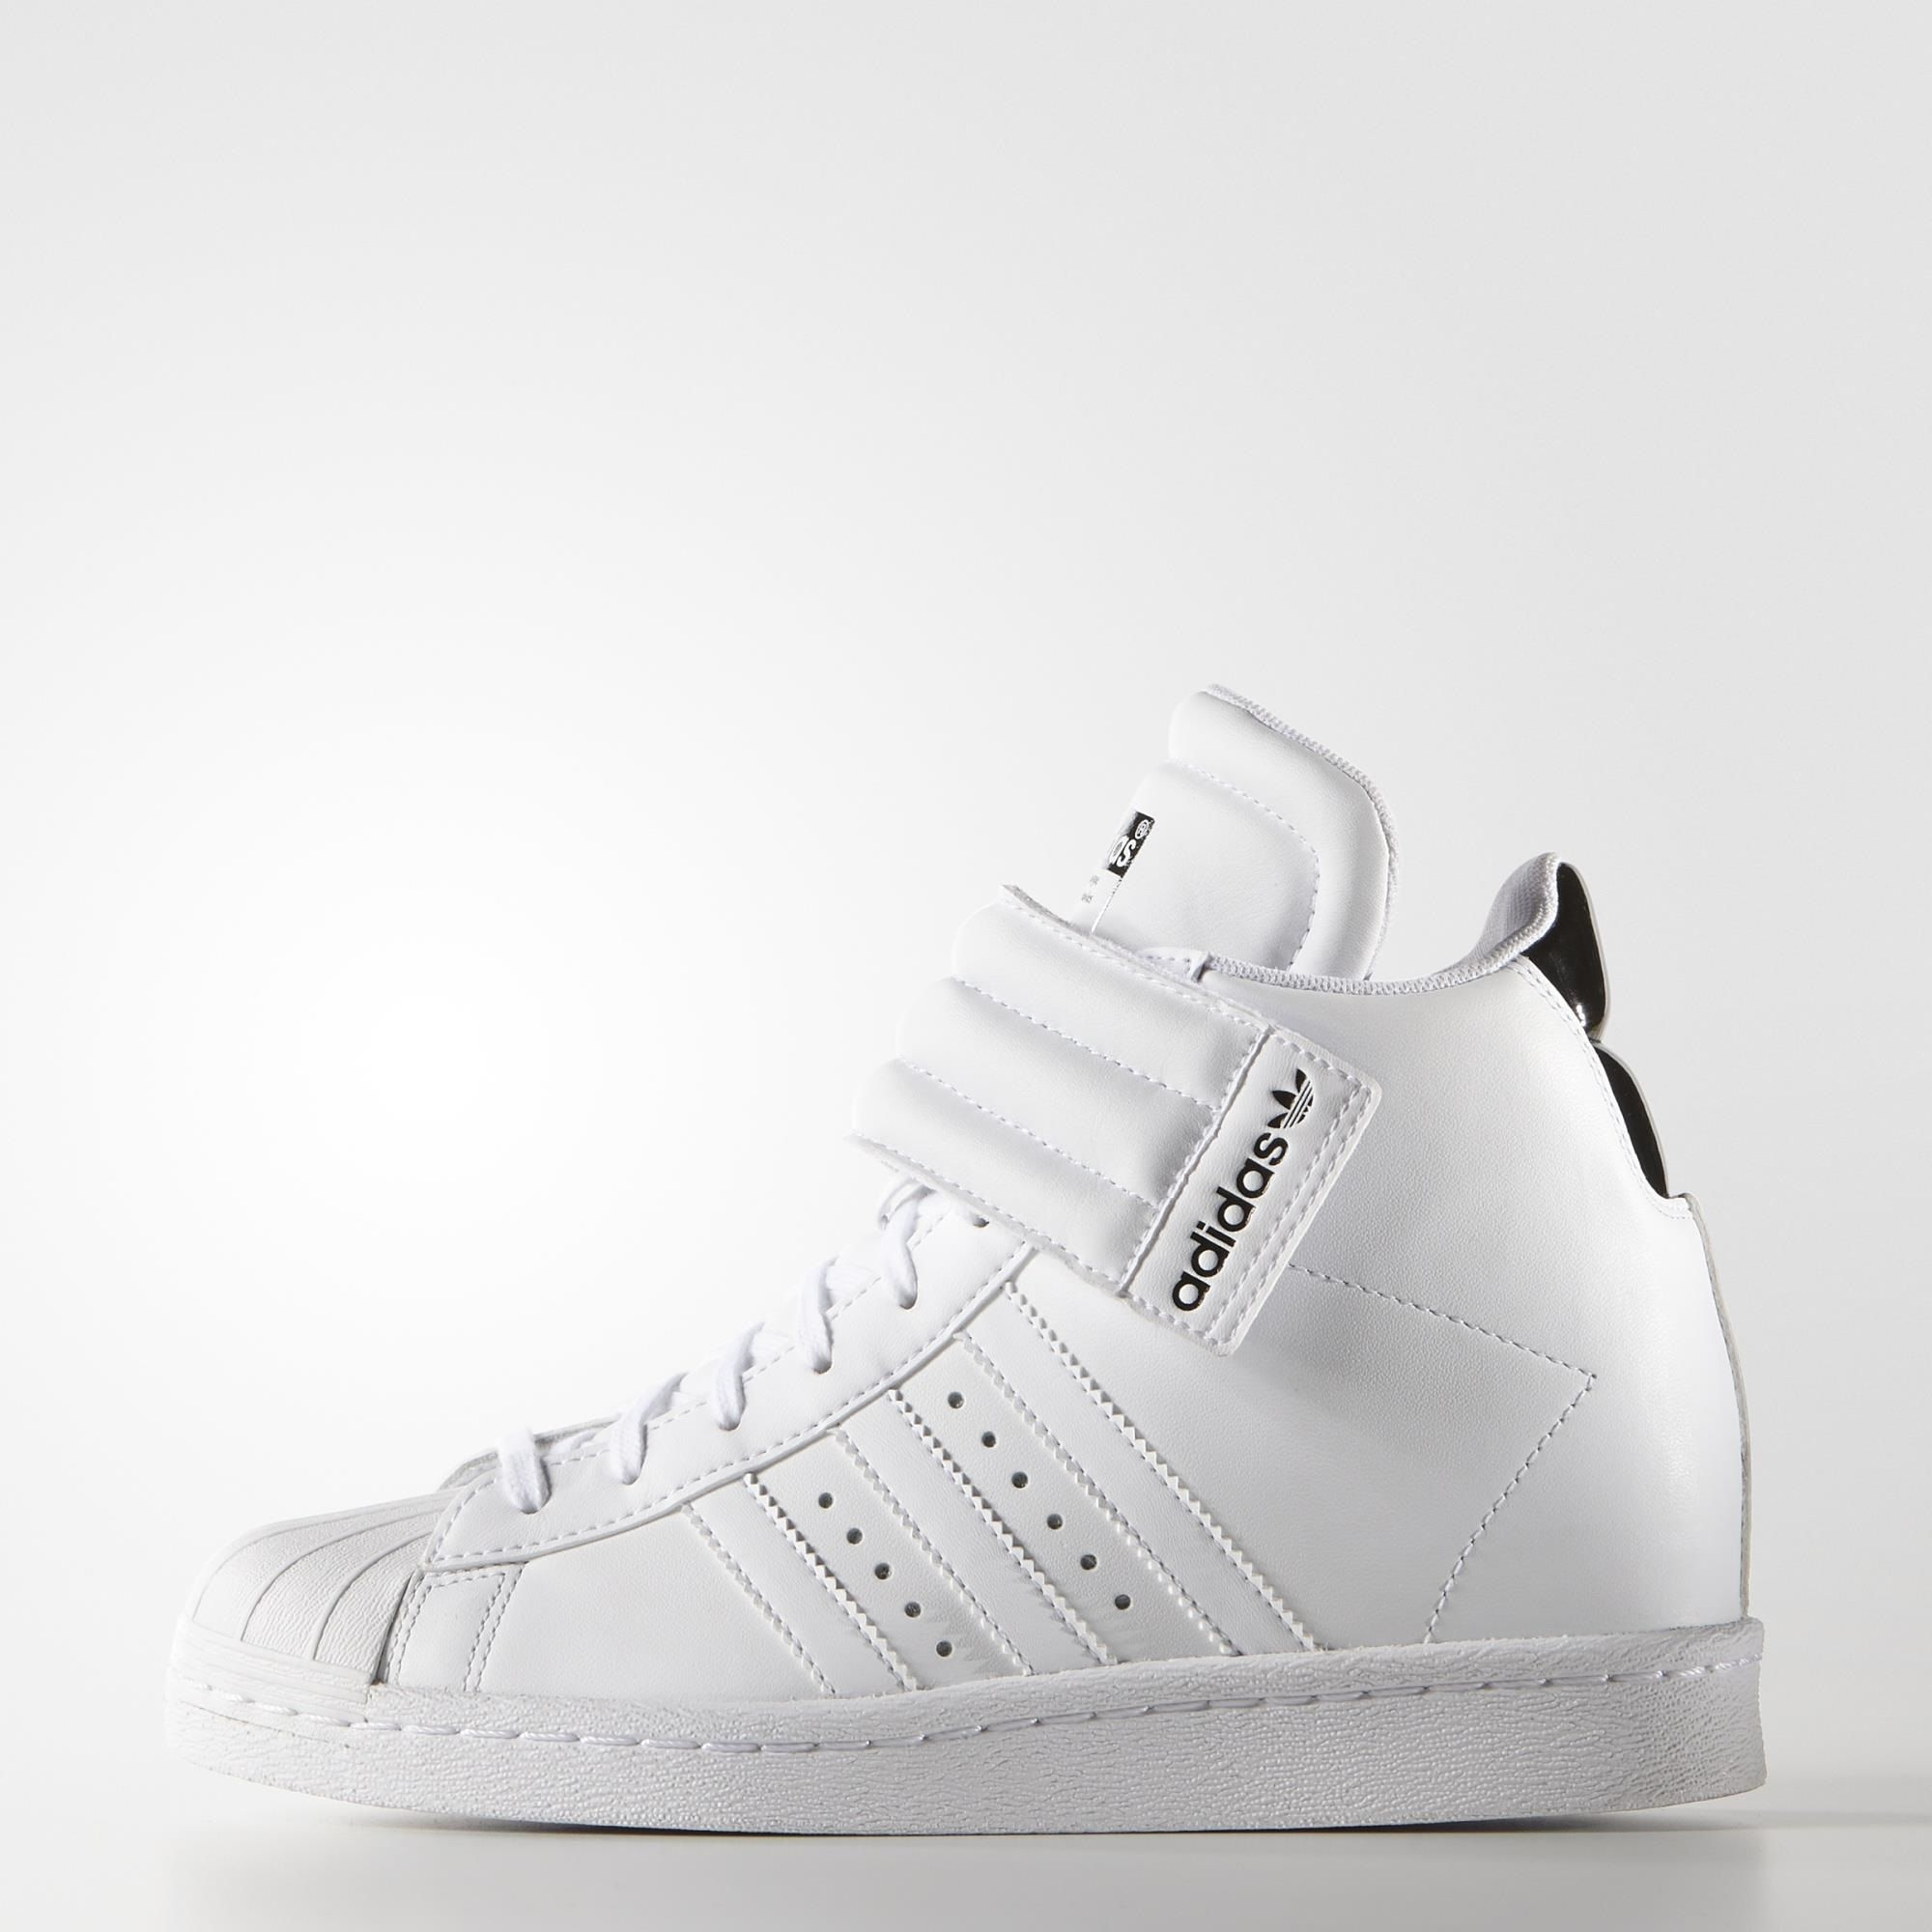 golden goose Cheap Superstar sneakers sale Marcos y Marcos